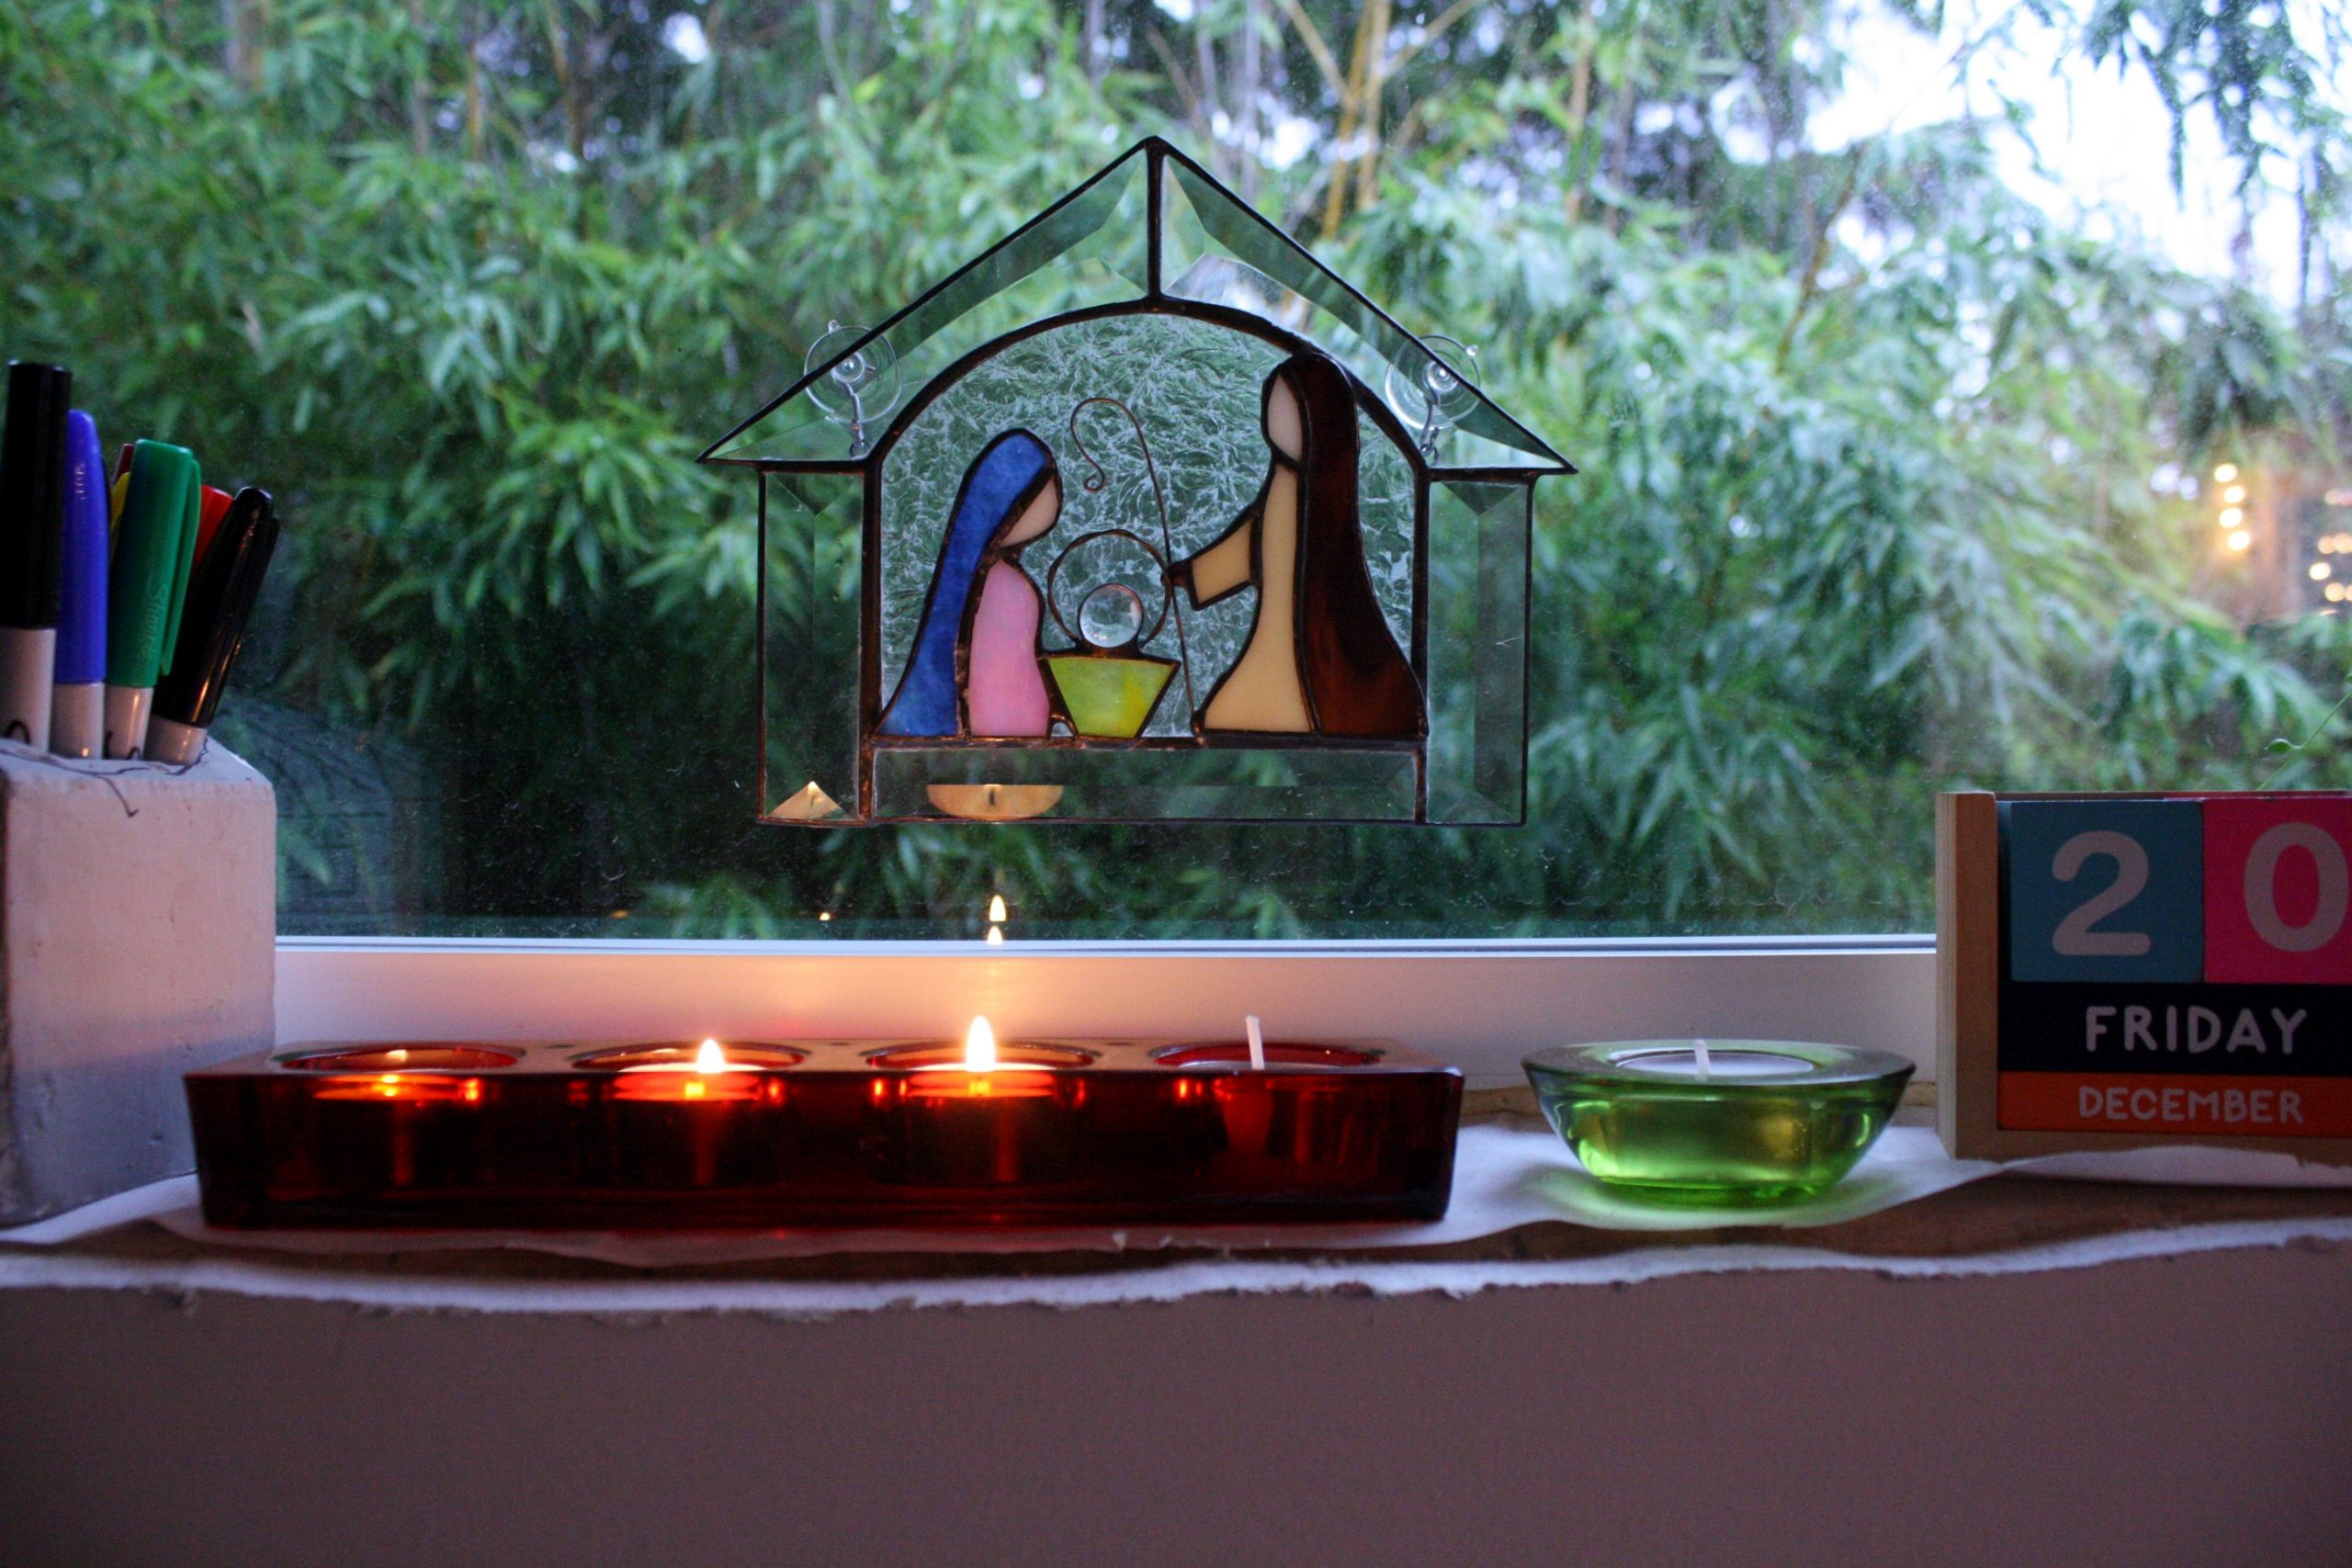 Happy Last Few Days of Advent!